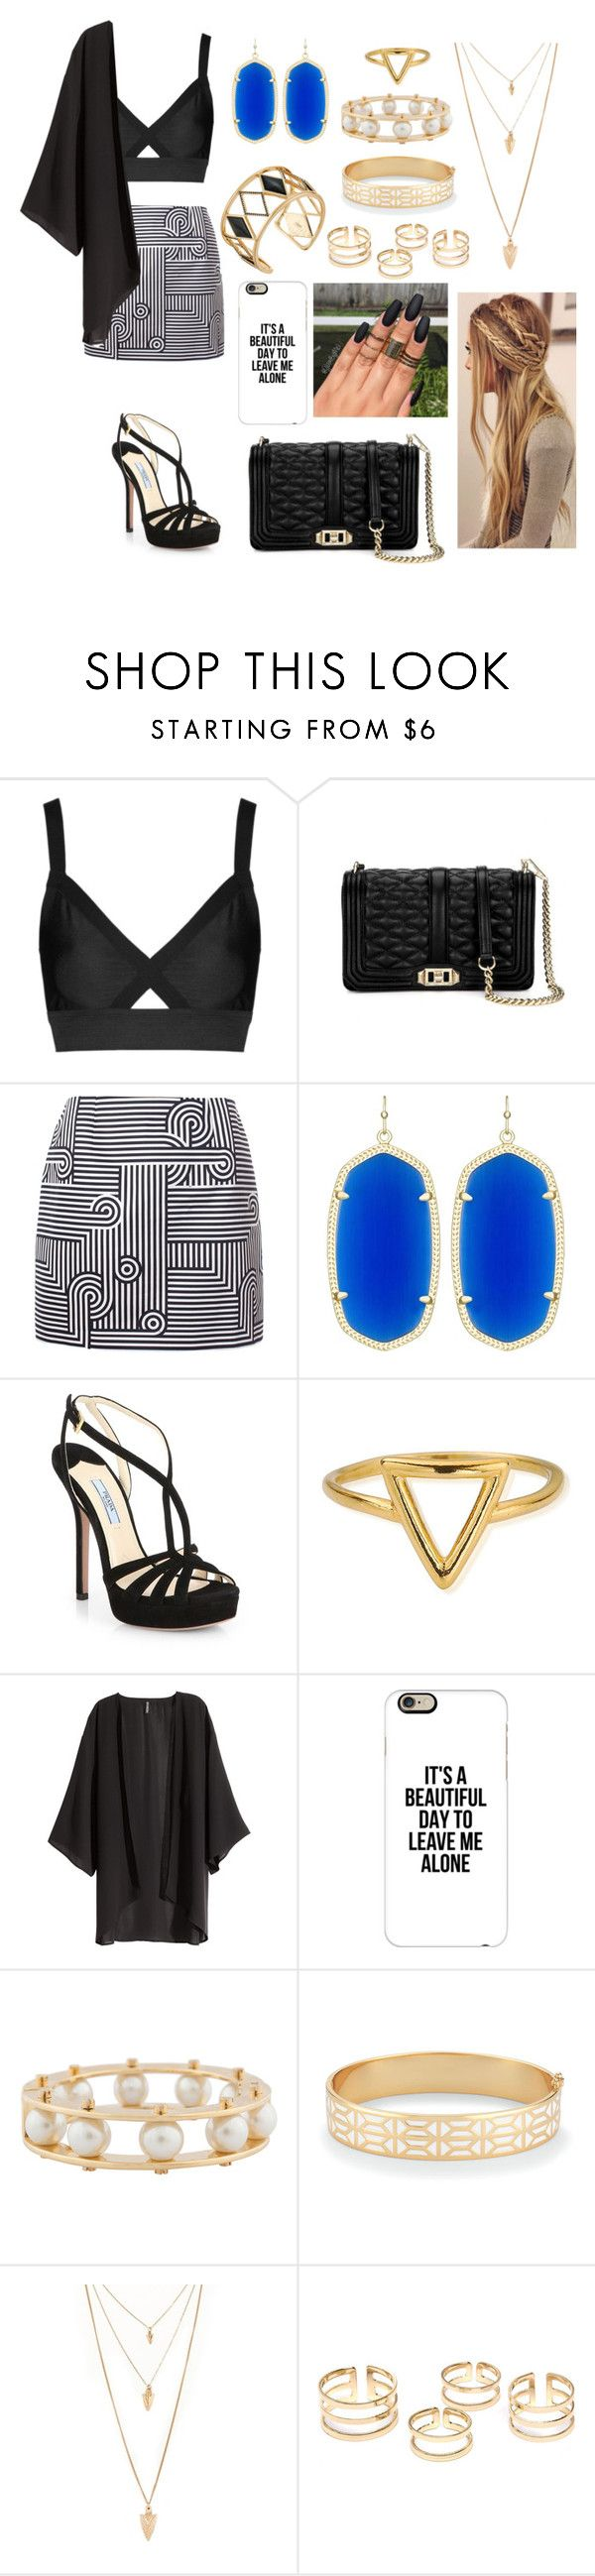 """Untitled #245"" by godlover-11 ❤ liked on Polyvore featuring Topshop, Rebecca Minkoff, Victoria, Victoria Beckham, Kendra Scott, Prada, ChloBo, H&M, Casetify, Lele Sadoughi and Stella & Dot"